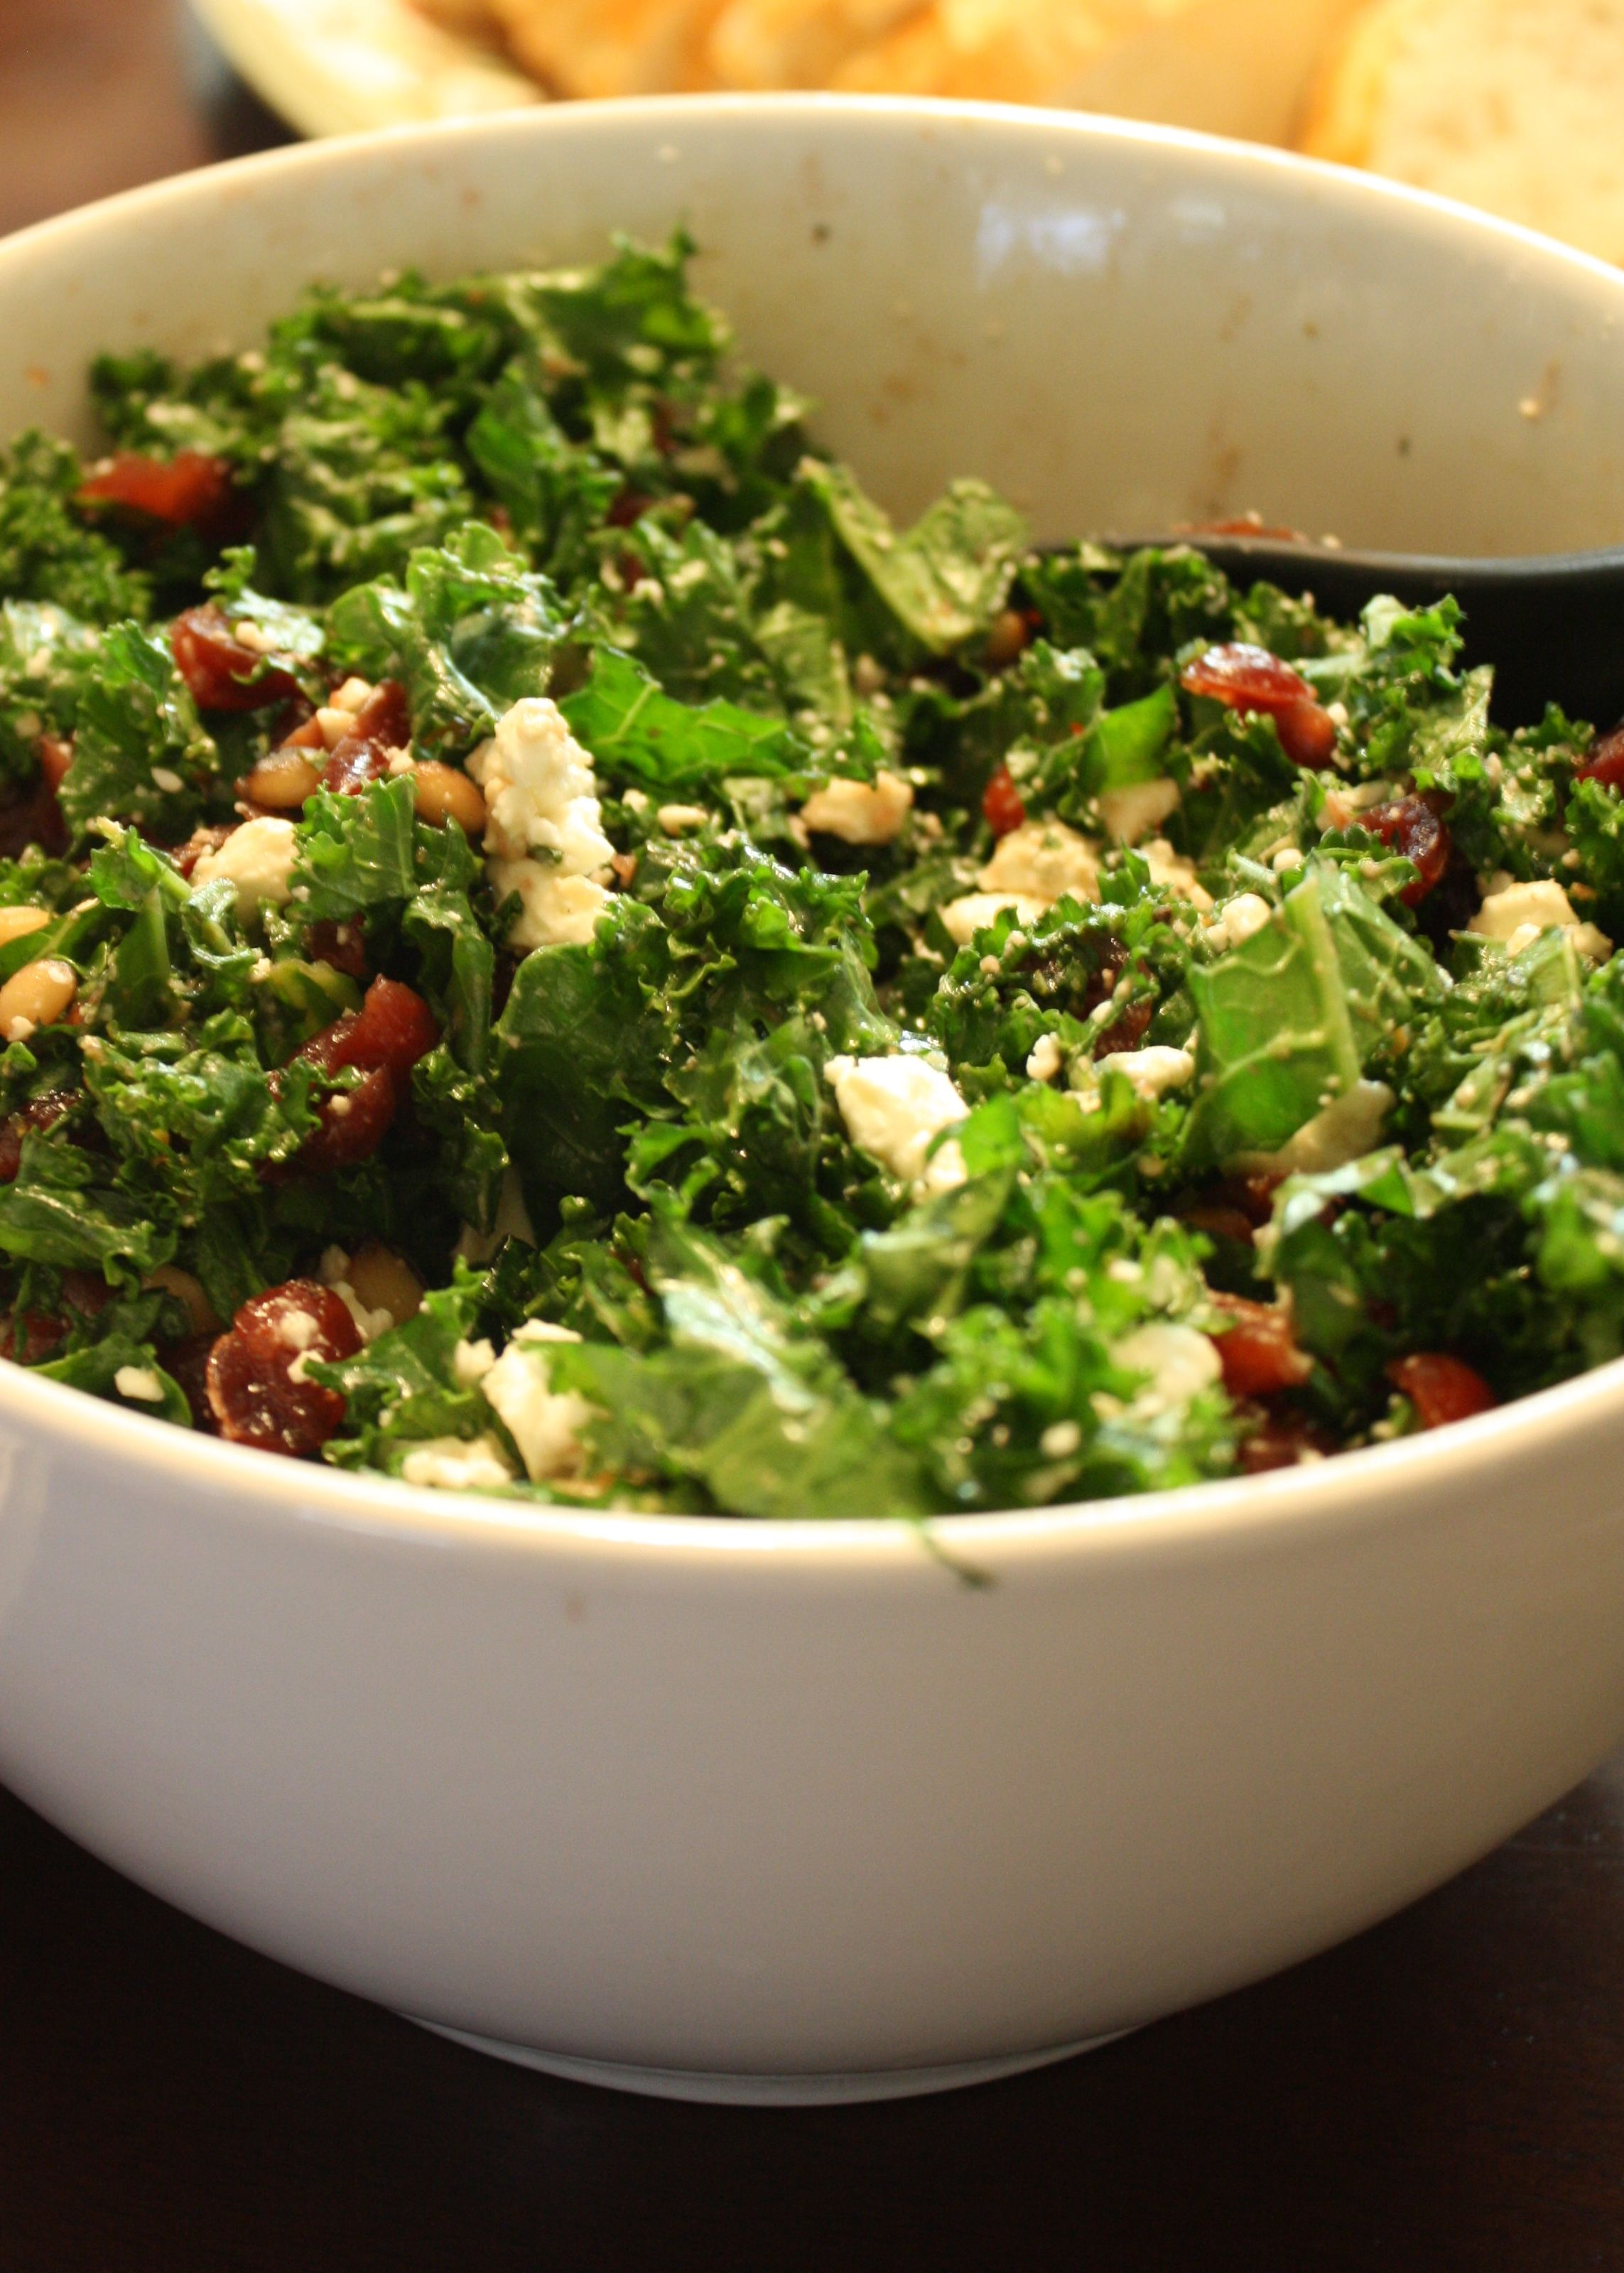 Whole Foods Kale Salad With Cranberries And Pine Nuts